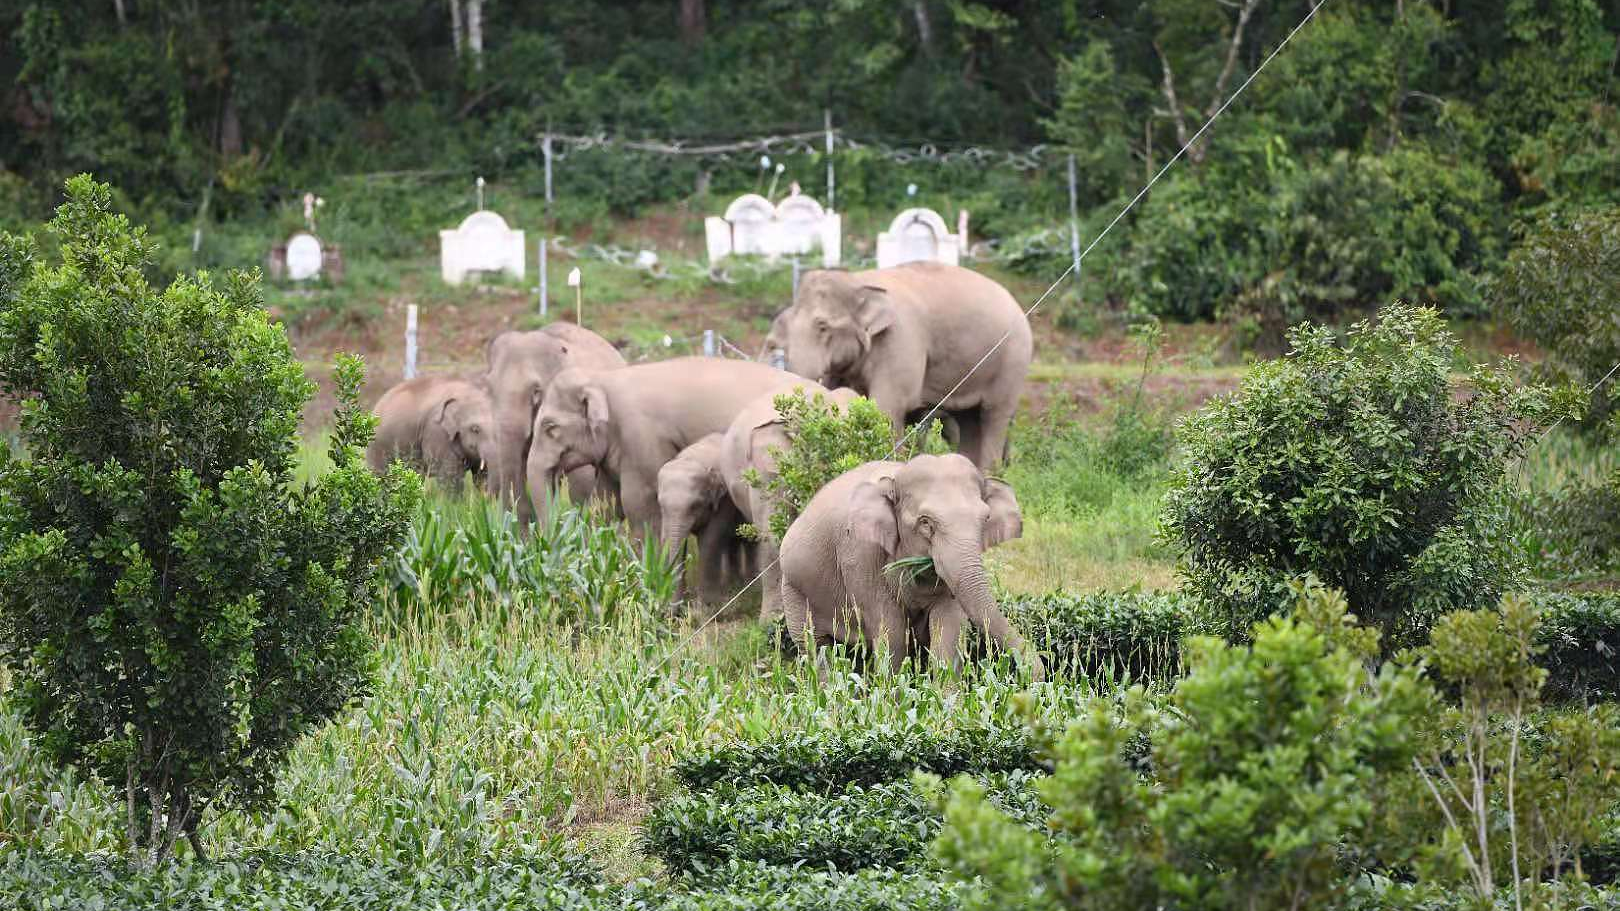 Heading home: Travel log of wandering elephants in SW China's Yunnan